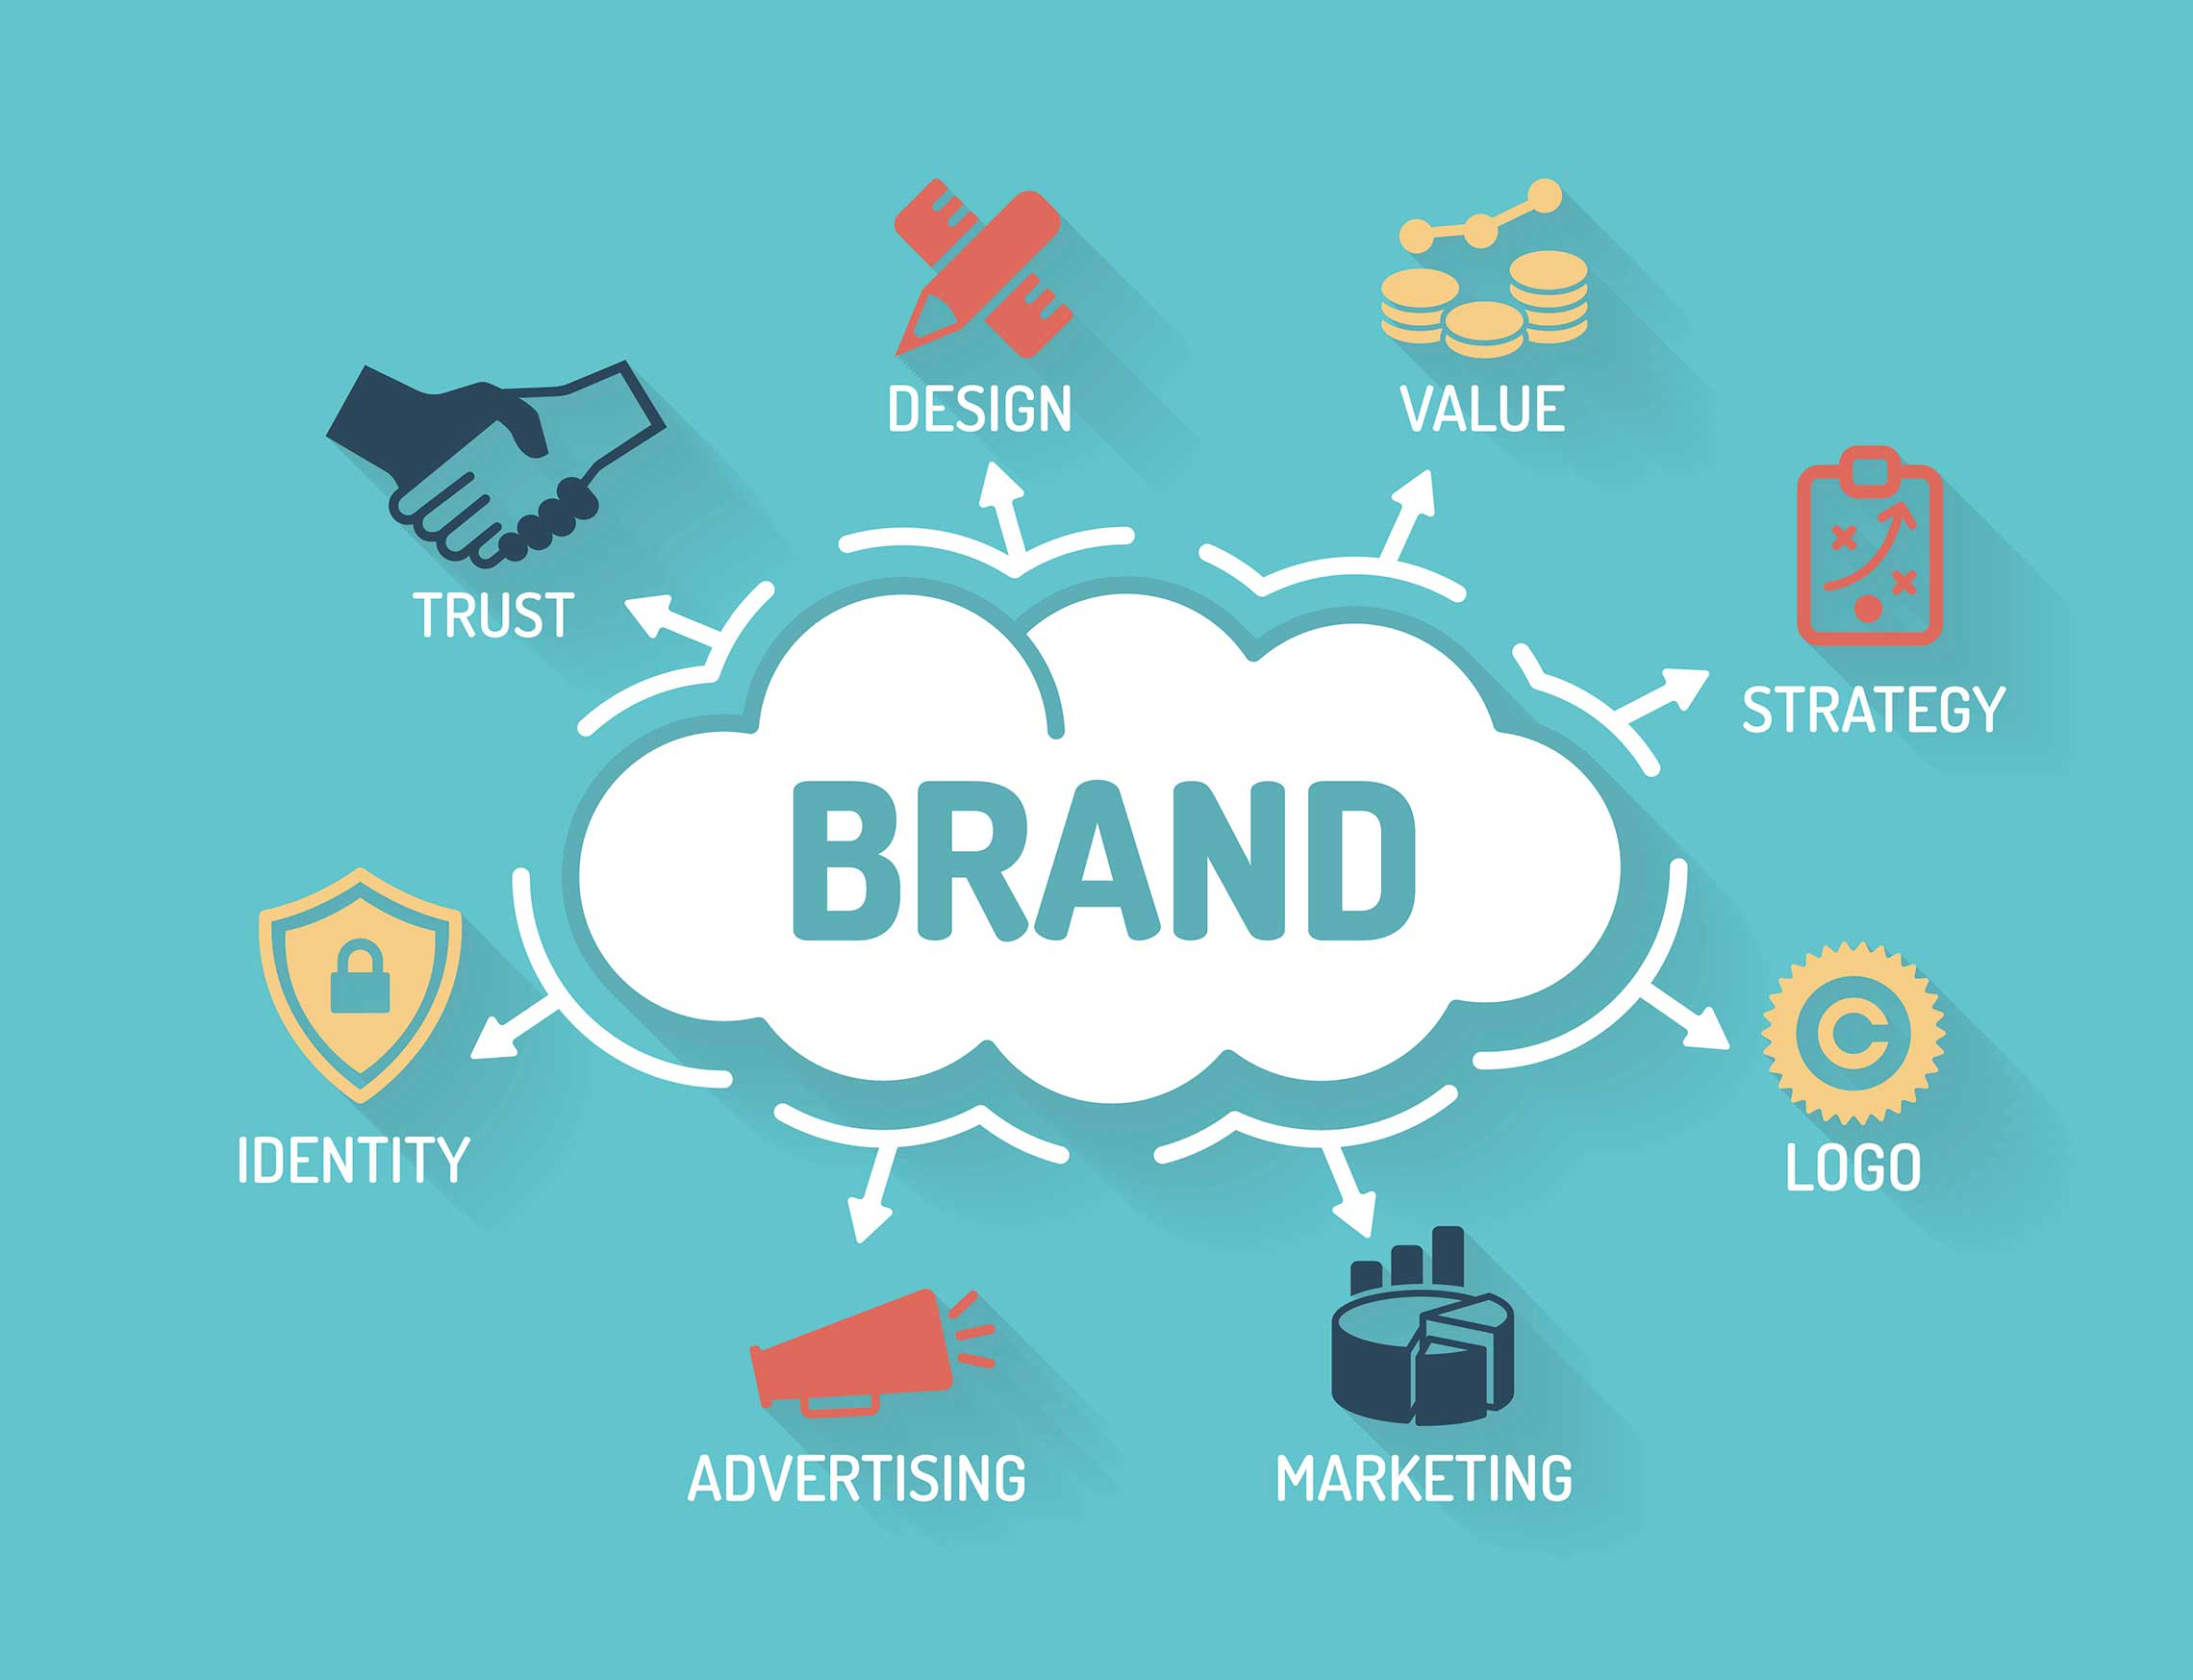 Why Business Branding and Marriage Might Have More in keeping Than You Thought